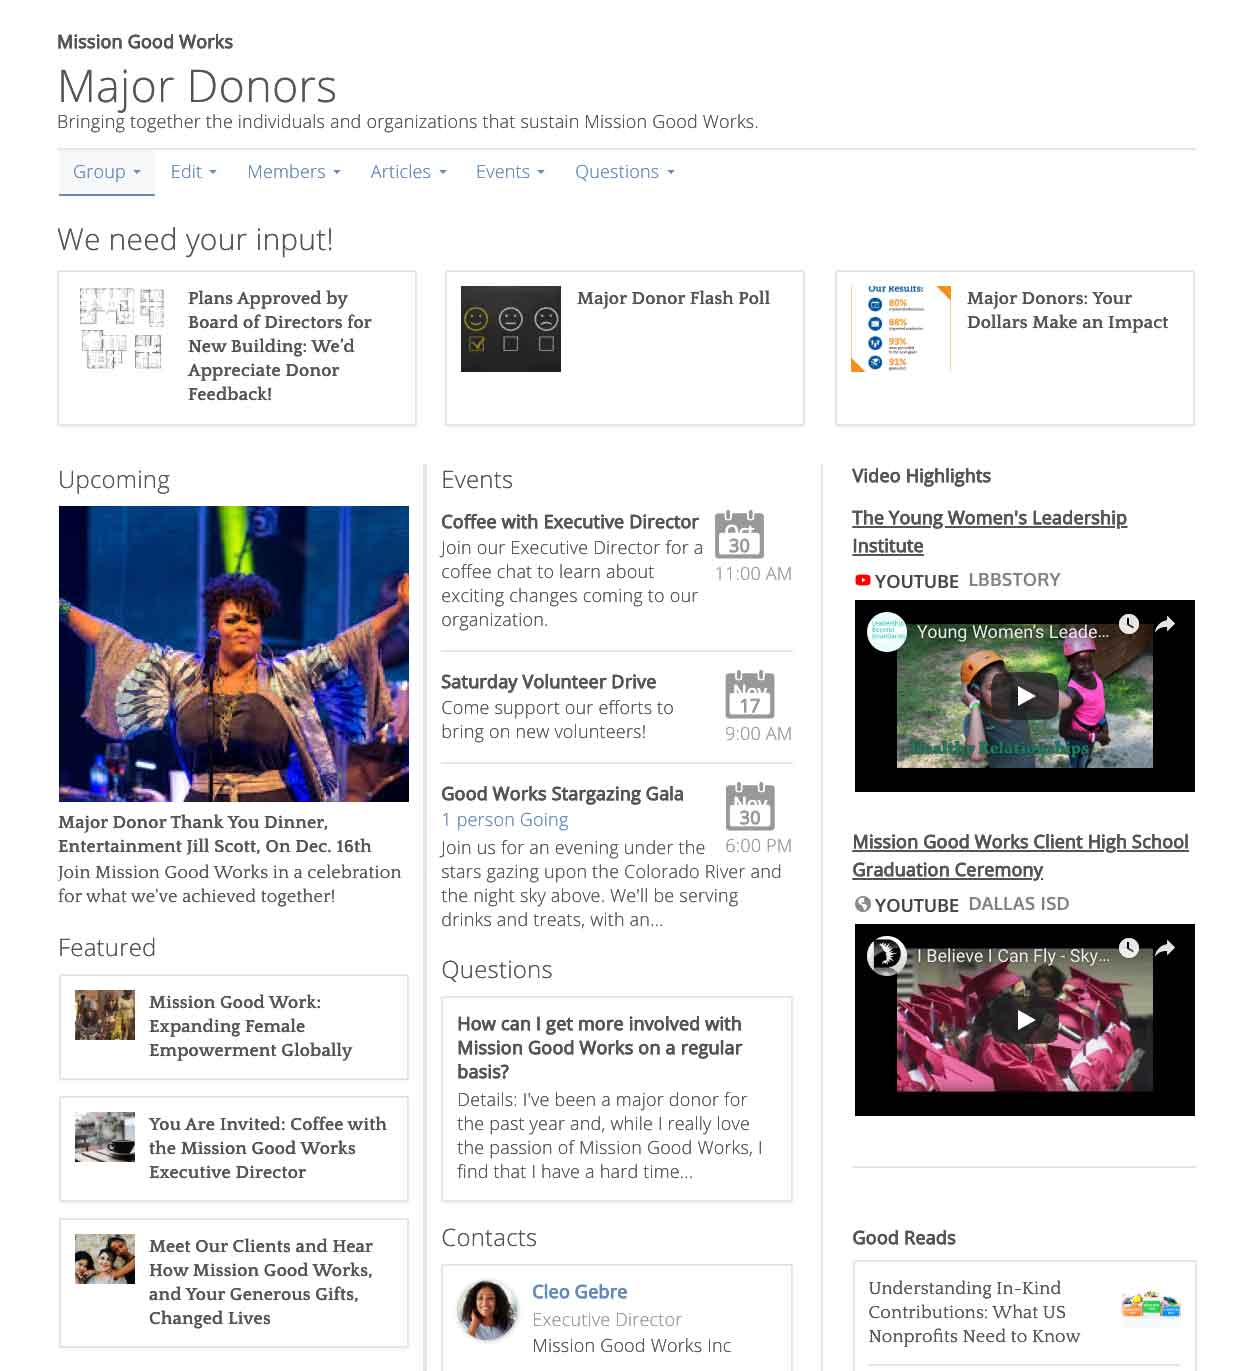 Major Donors interactive group screen shot